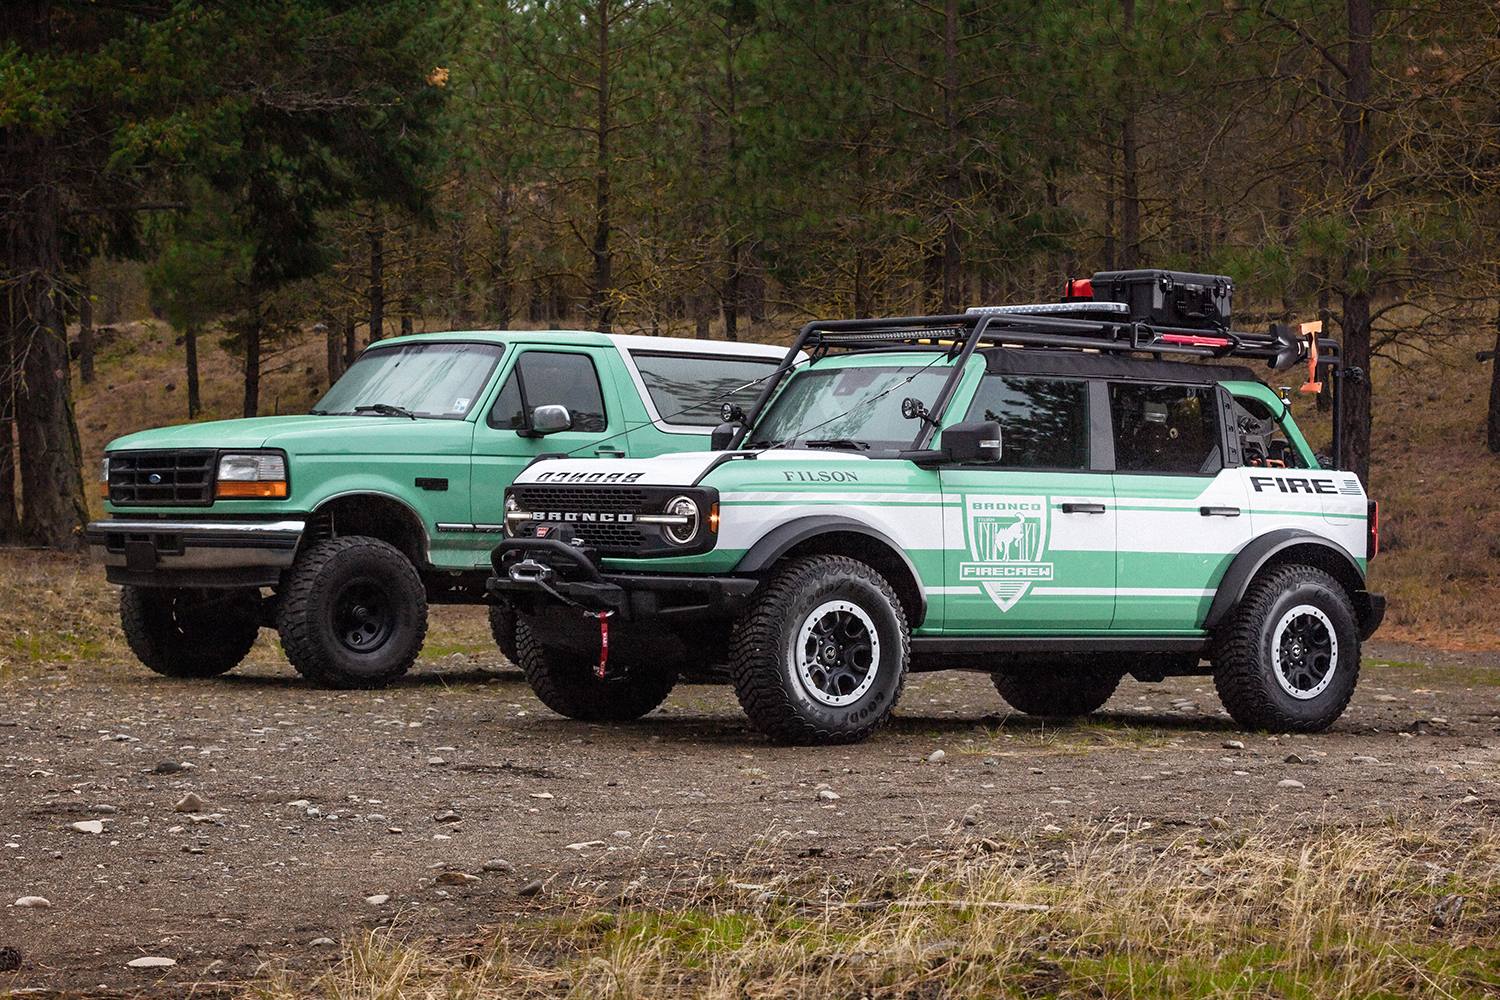 Filson Ford Bronco Wildland Fire Rig concept vehicle